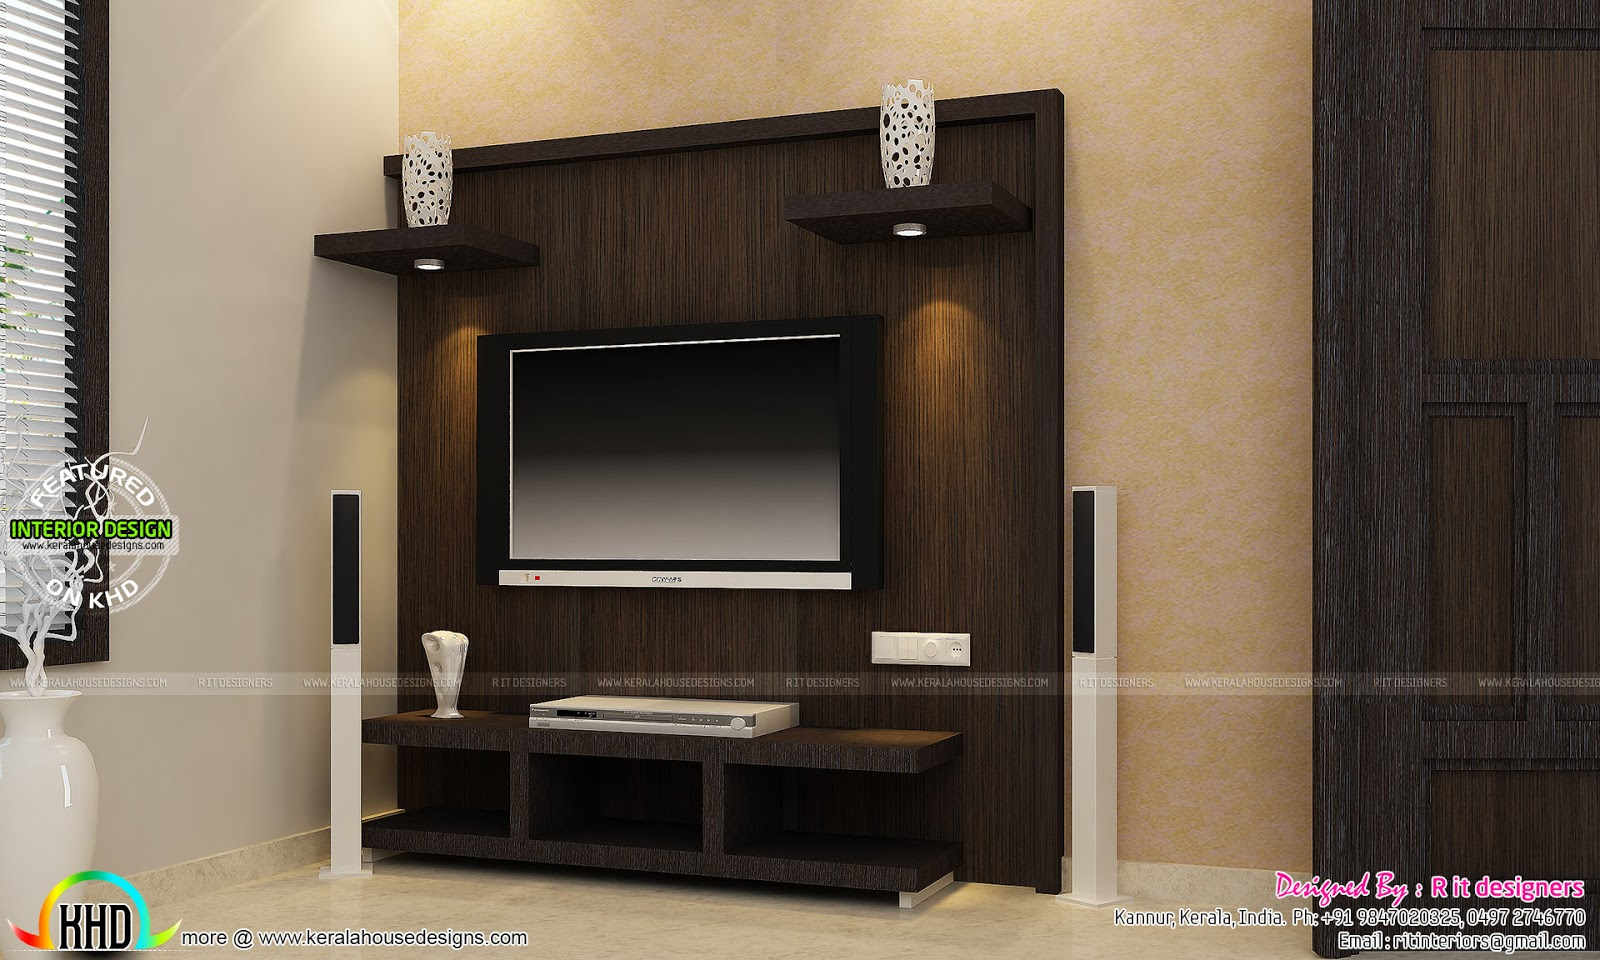 Tv unit furniture dining and bedroom interiors kerala for Household furniture design